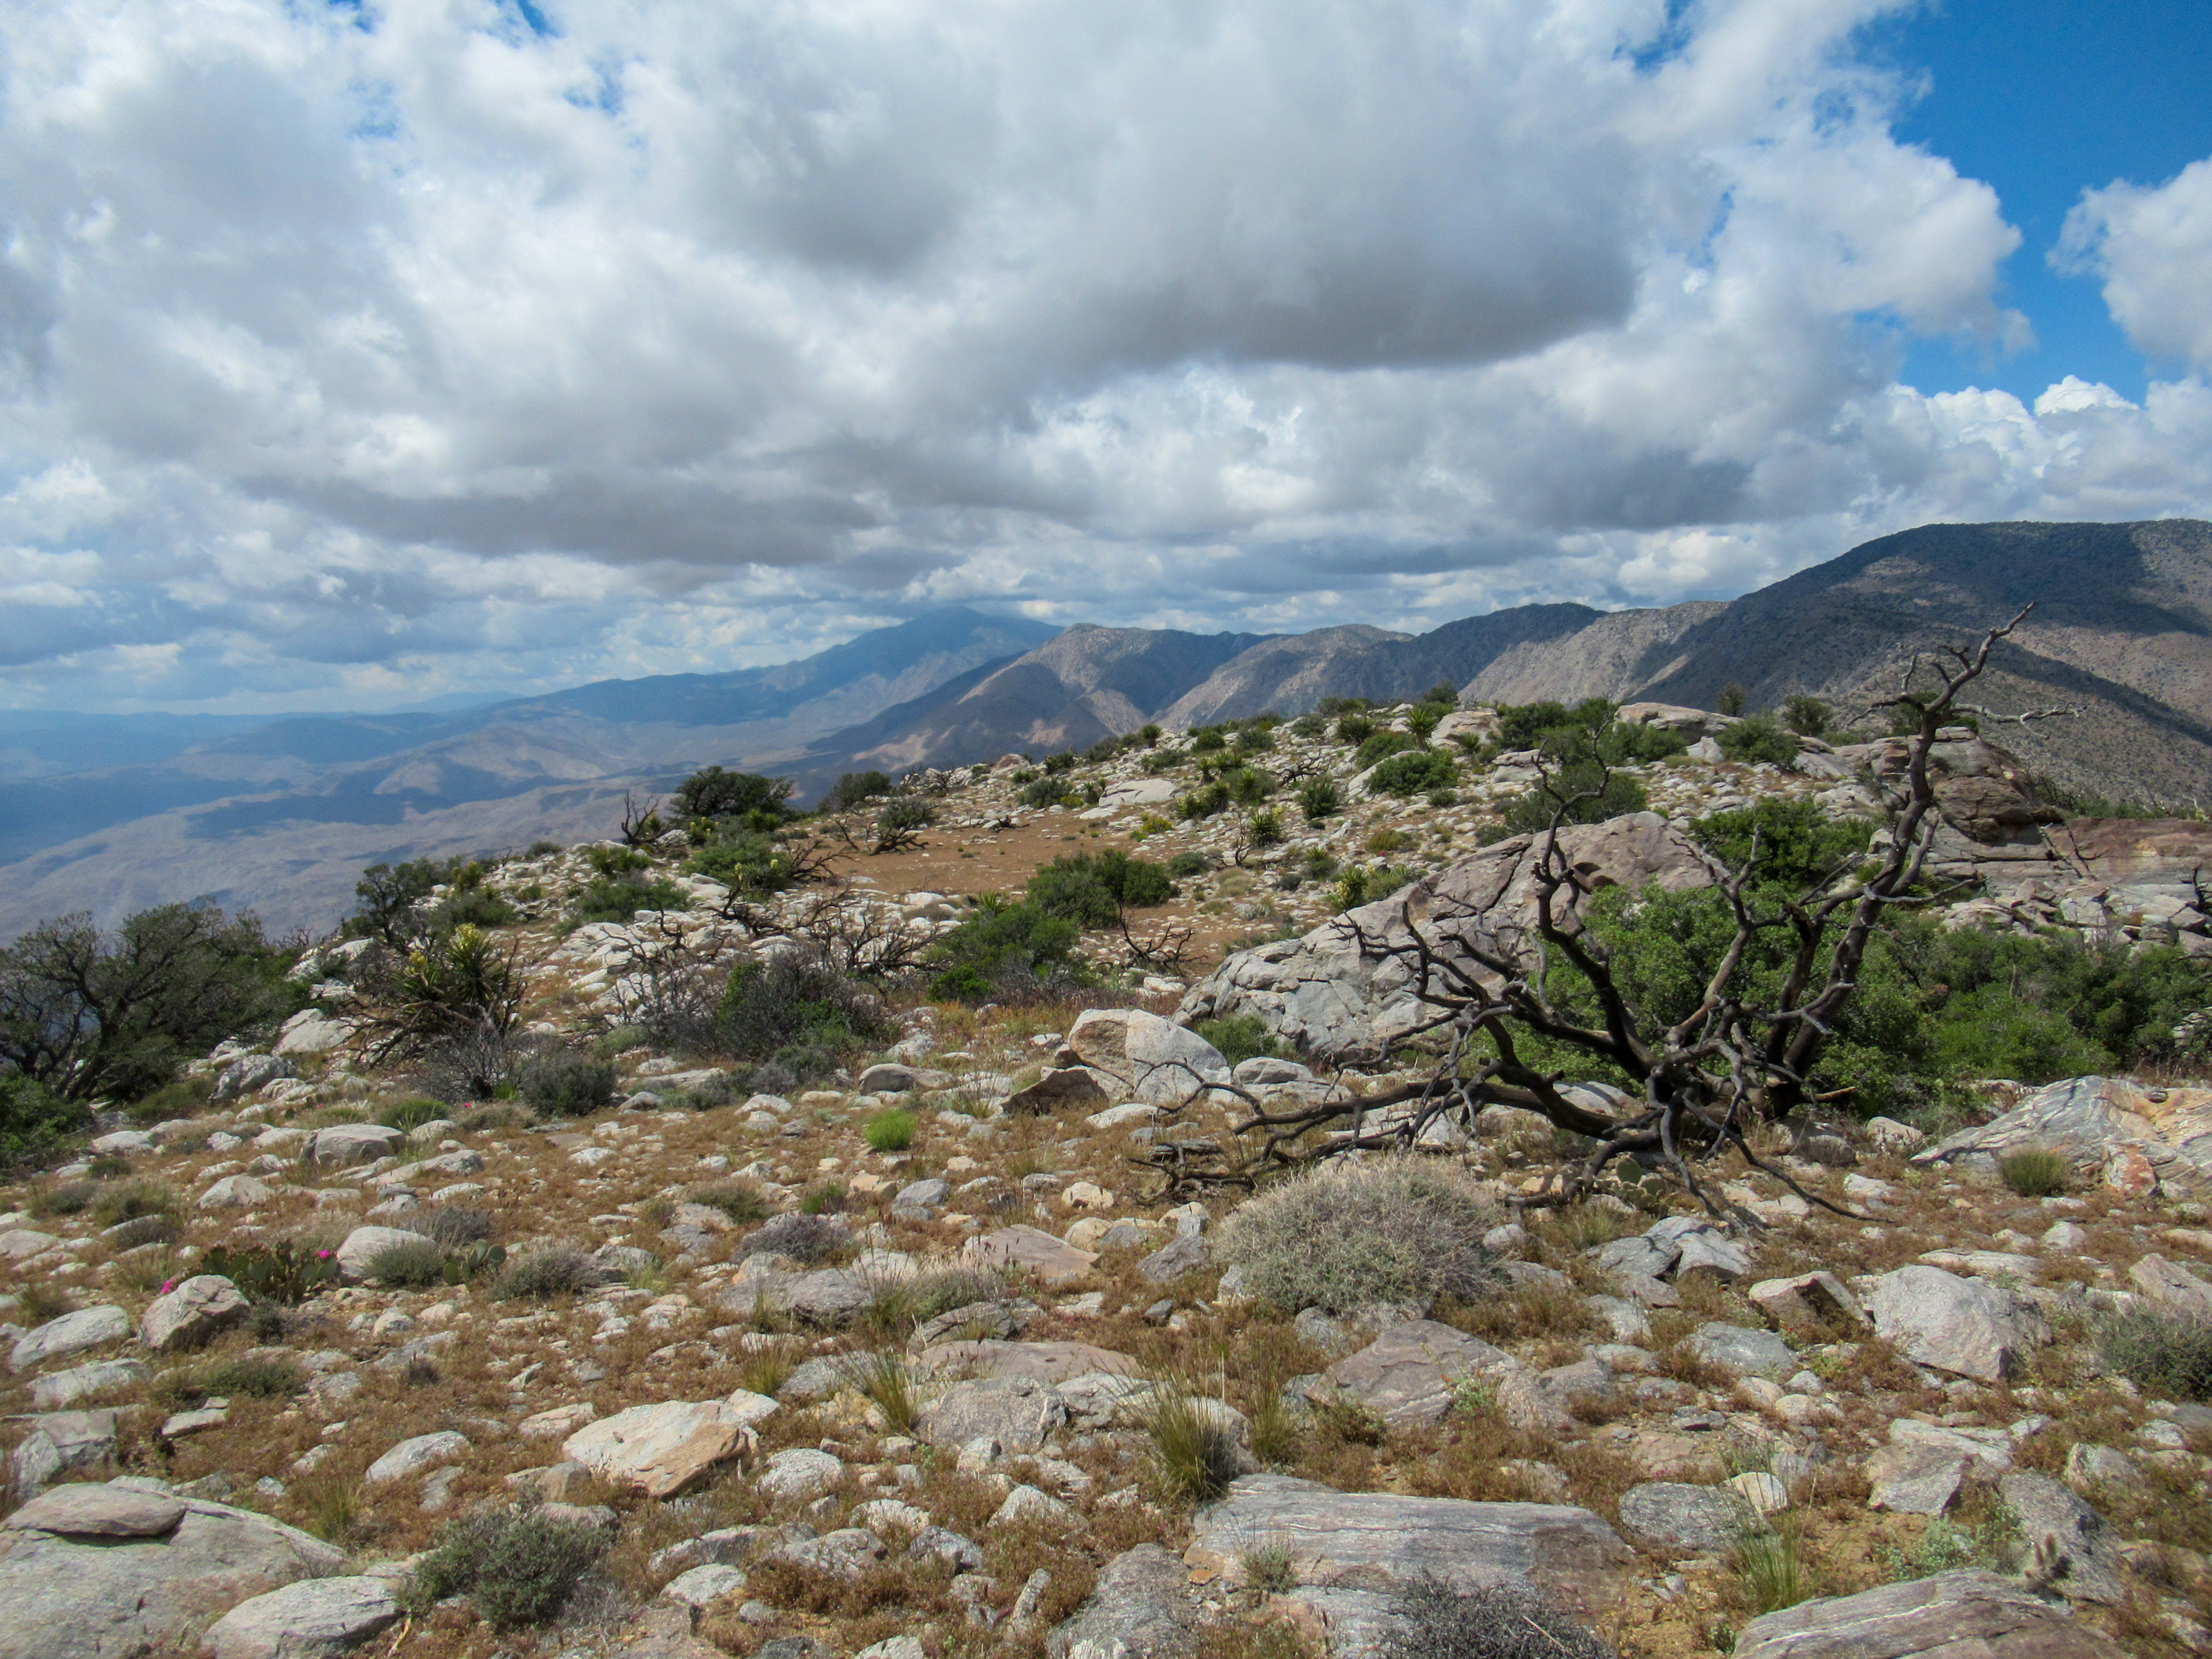 Dark Clouds over the Santa Rosa mountains of Anza Borrego.